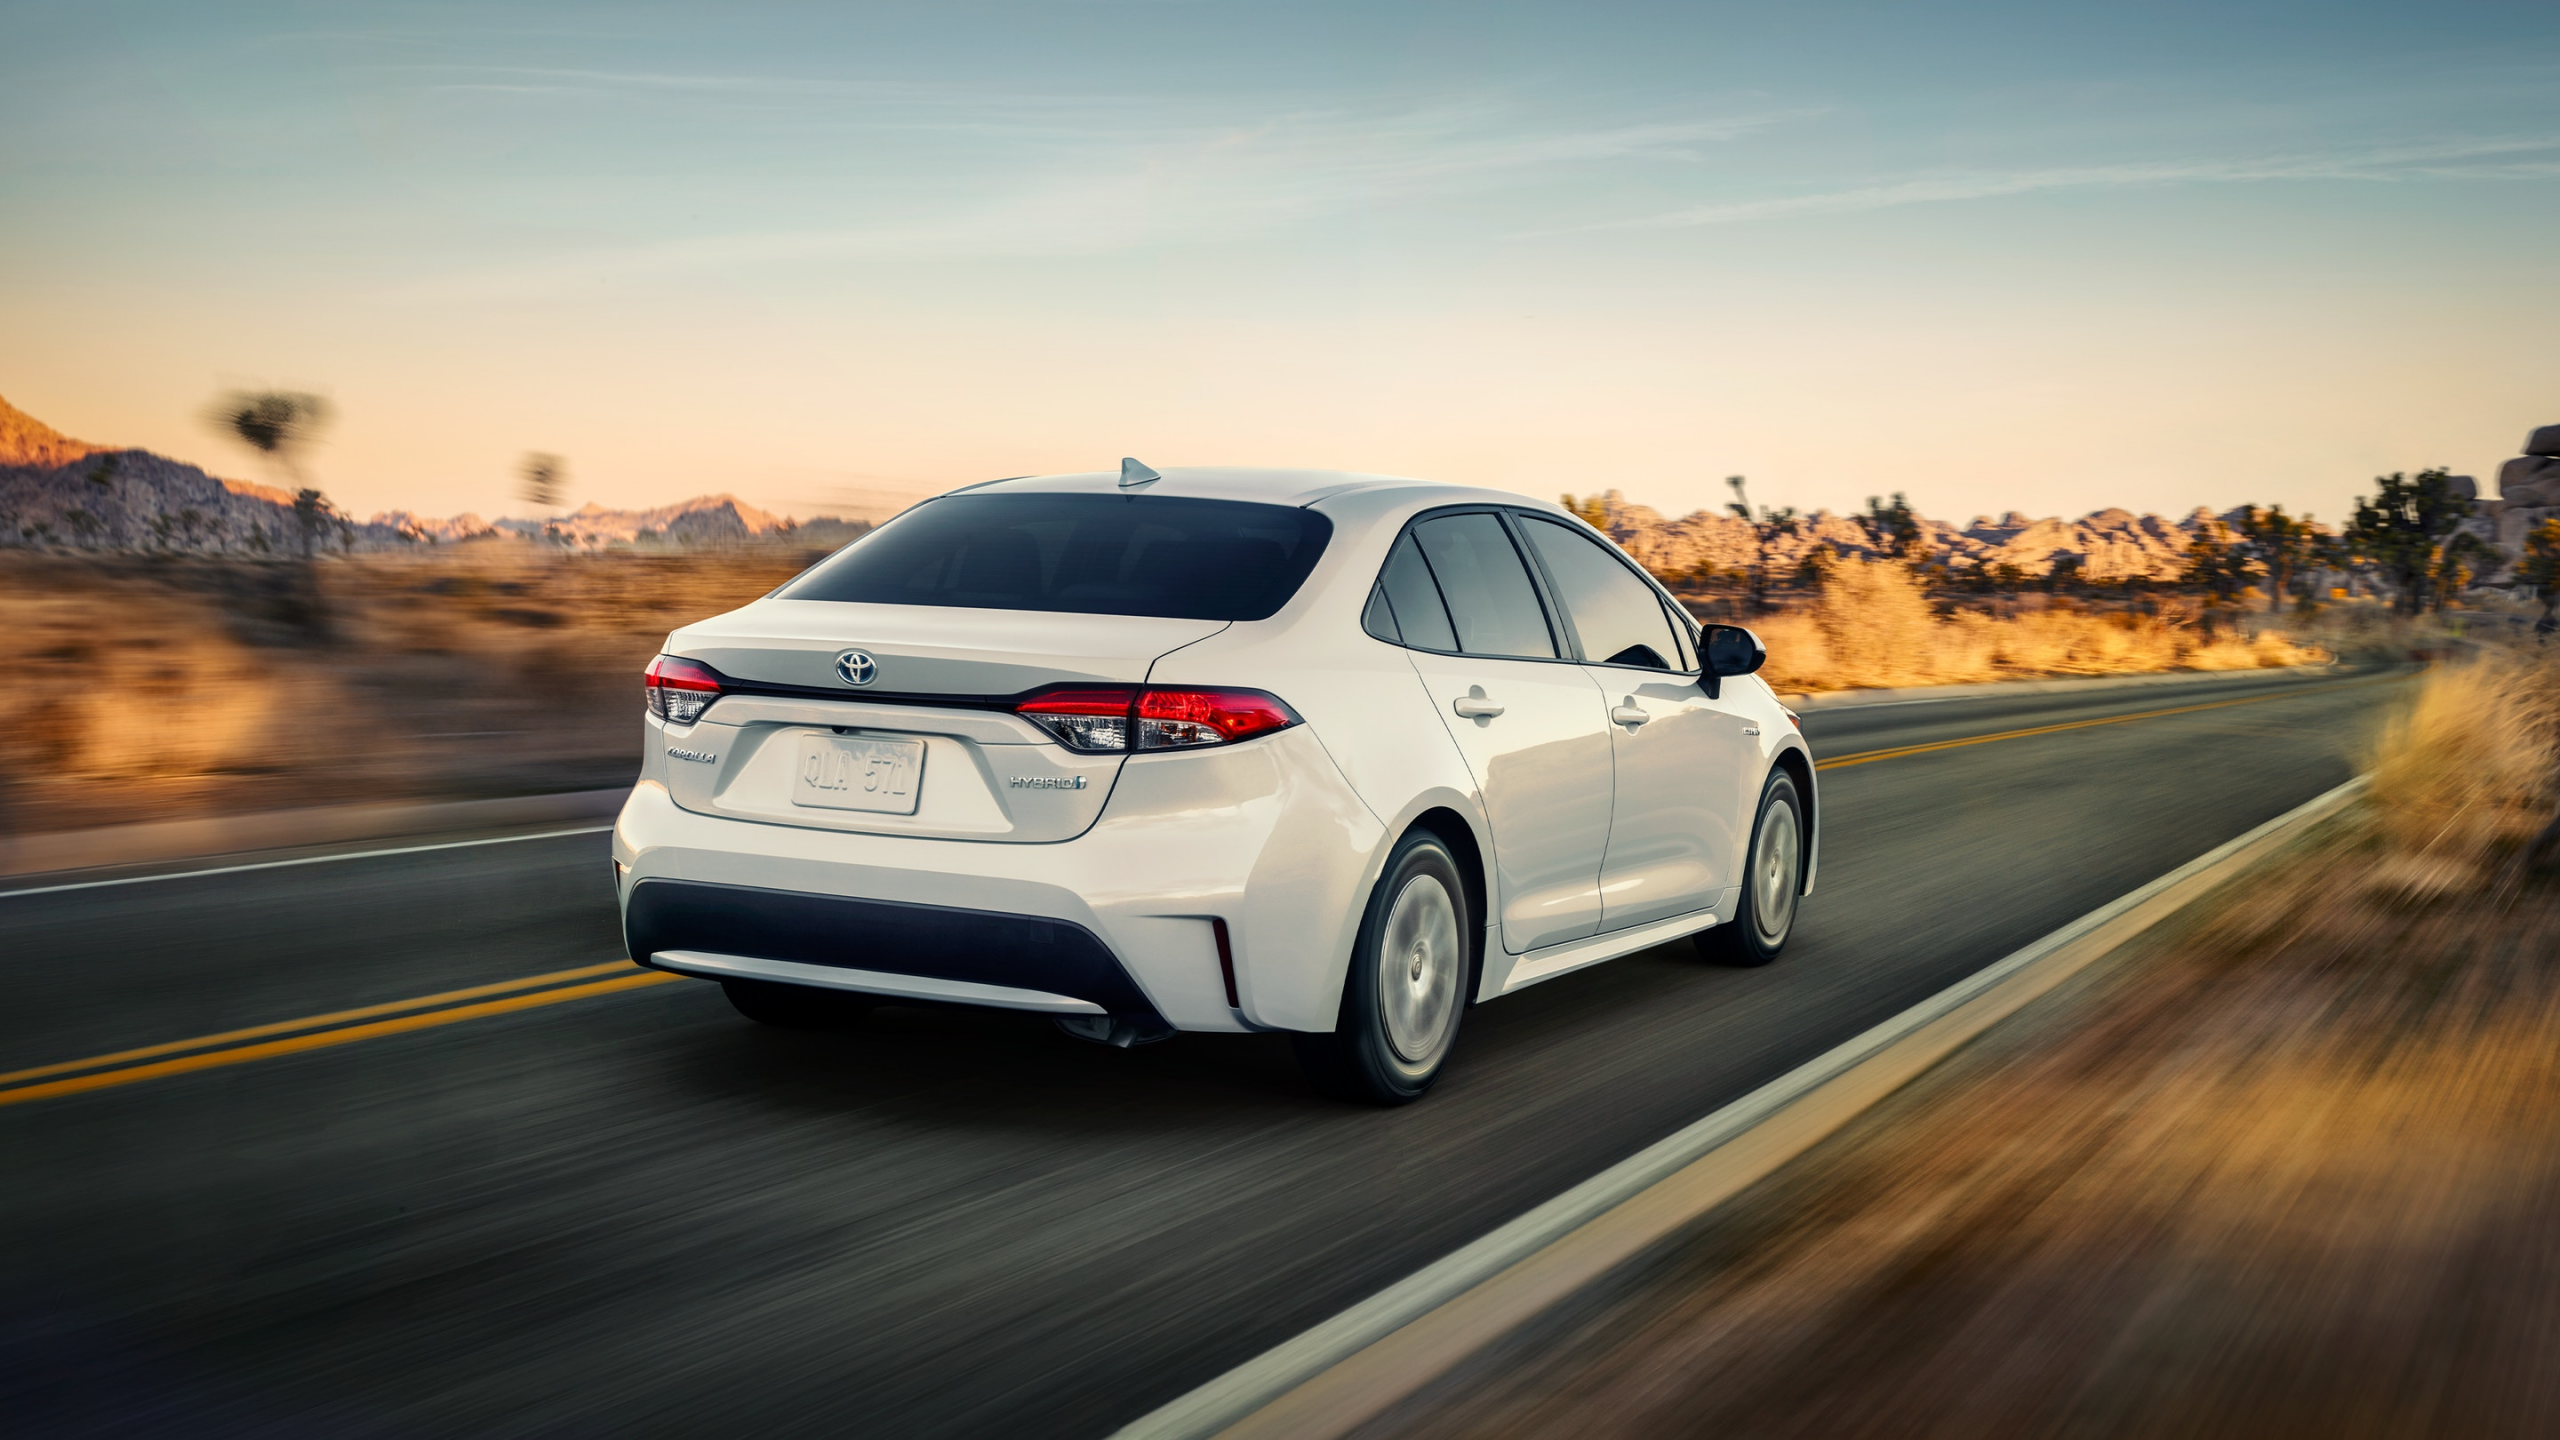 The 2020 Toyota Corolla: Redesigned and Ready to Impress at St. Cloud Toyota of Waite Park, MN!